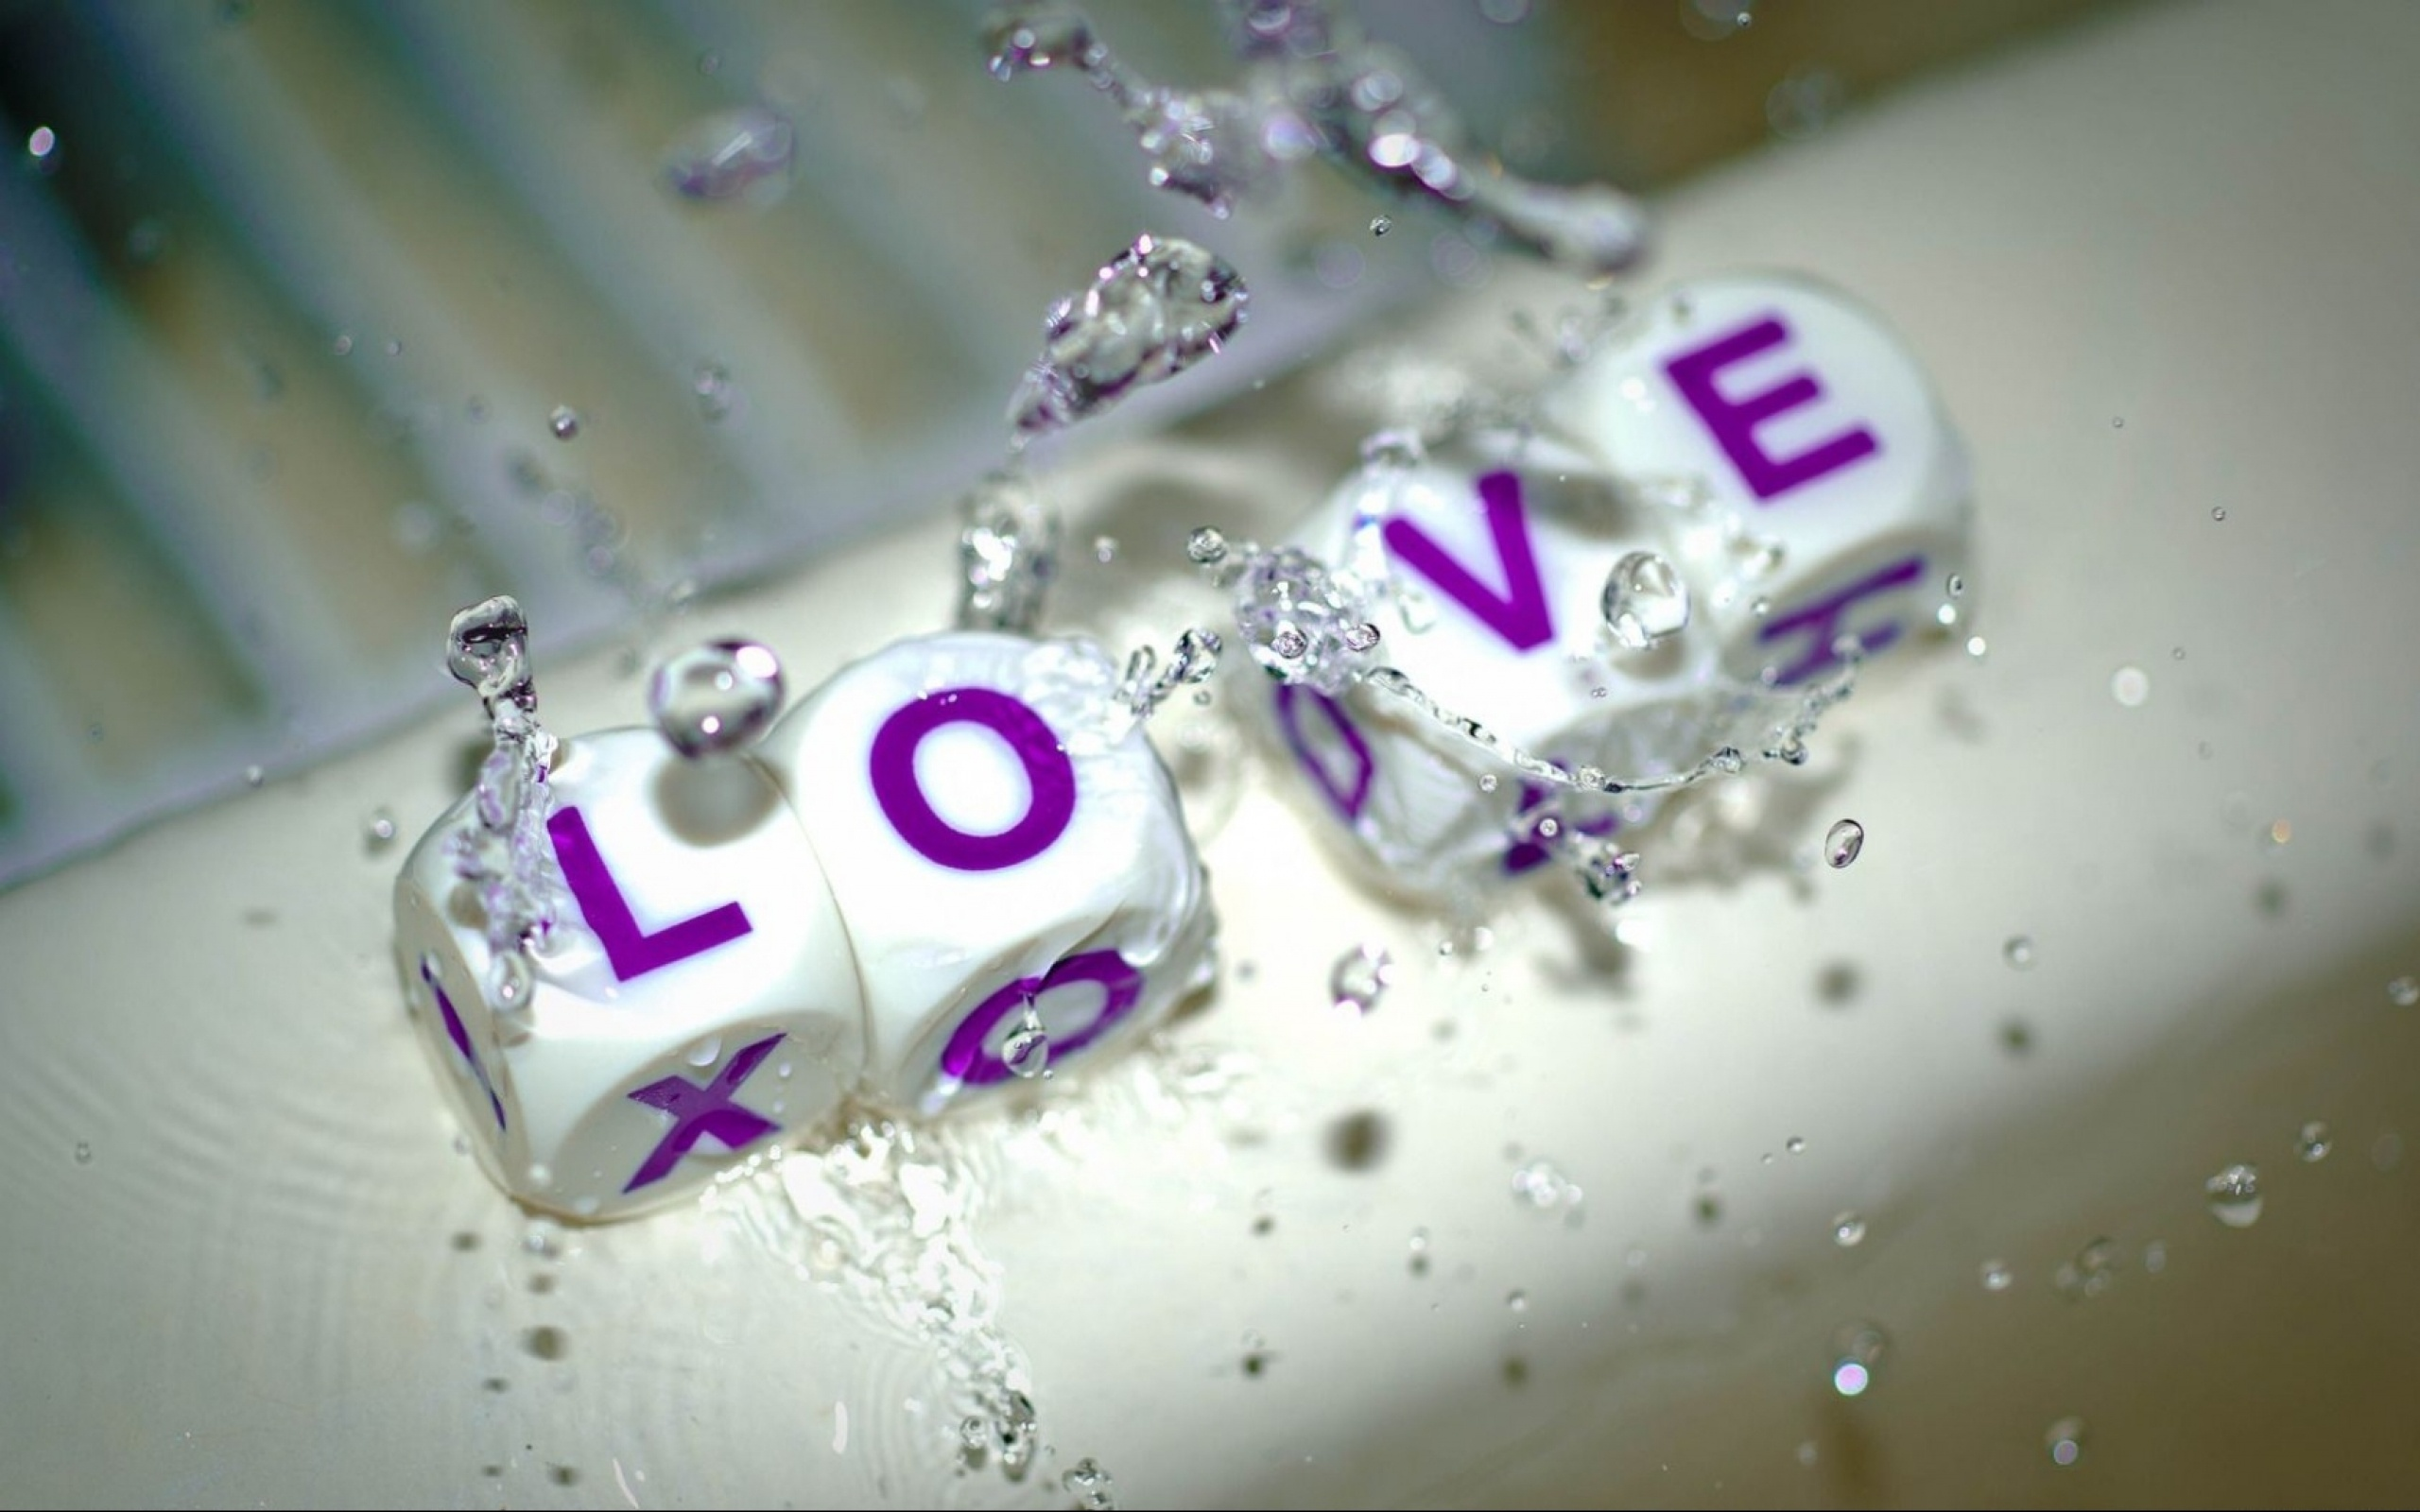 Love Wallpapers 2560x1600 : Purple Love Wallpapers - 2560x1600 - 620808